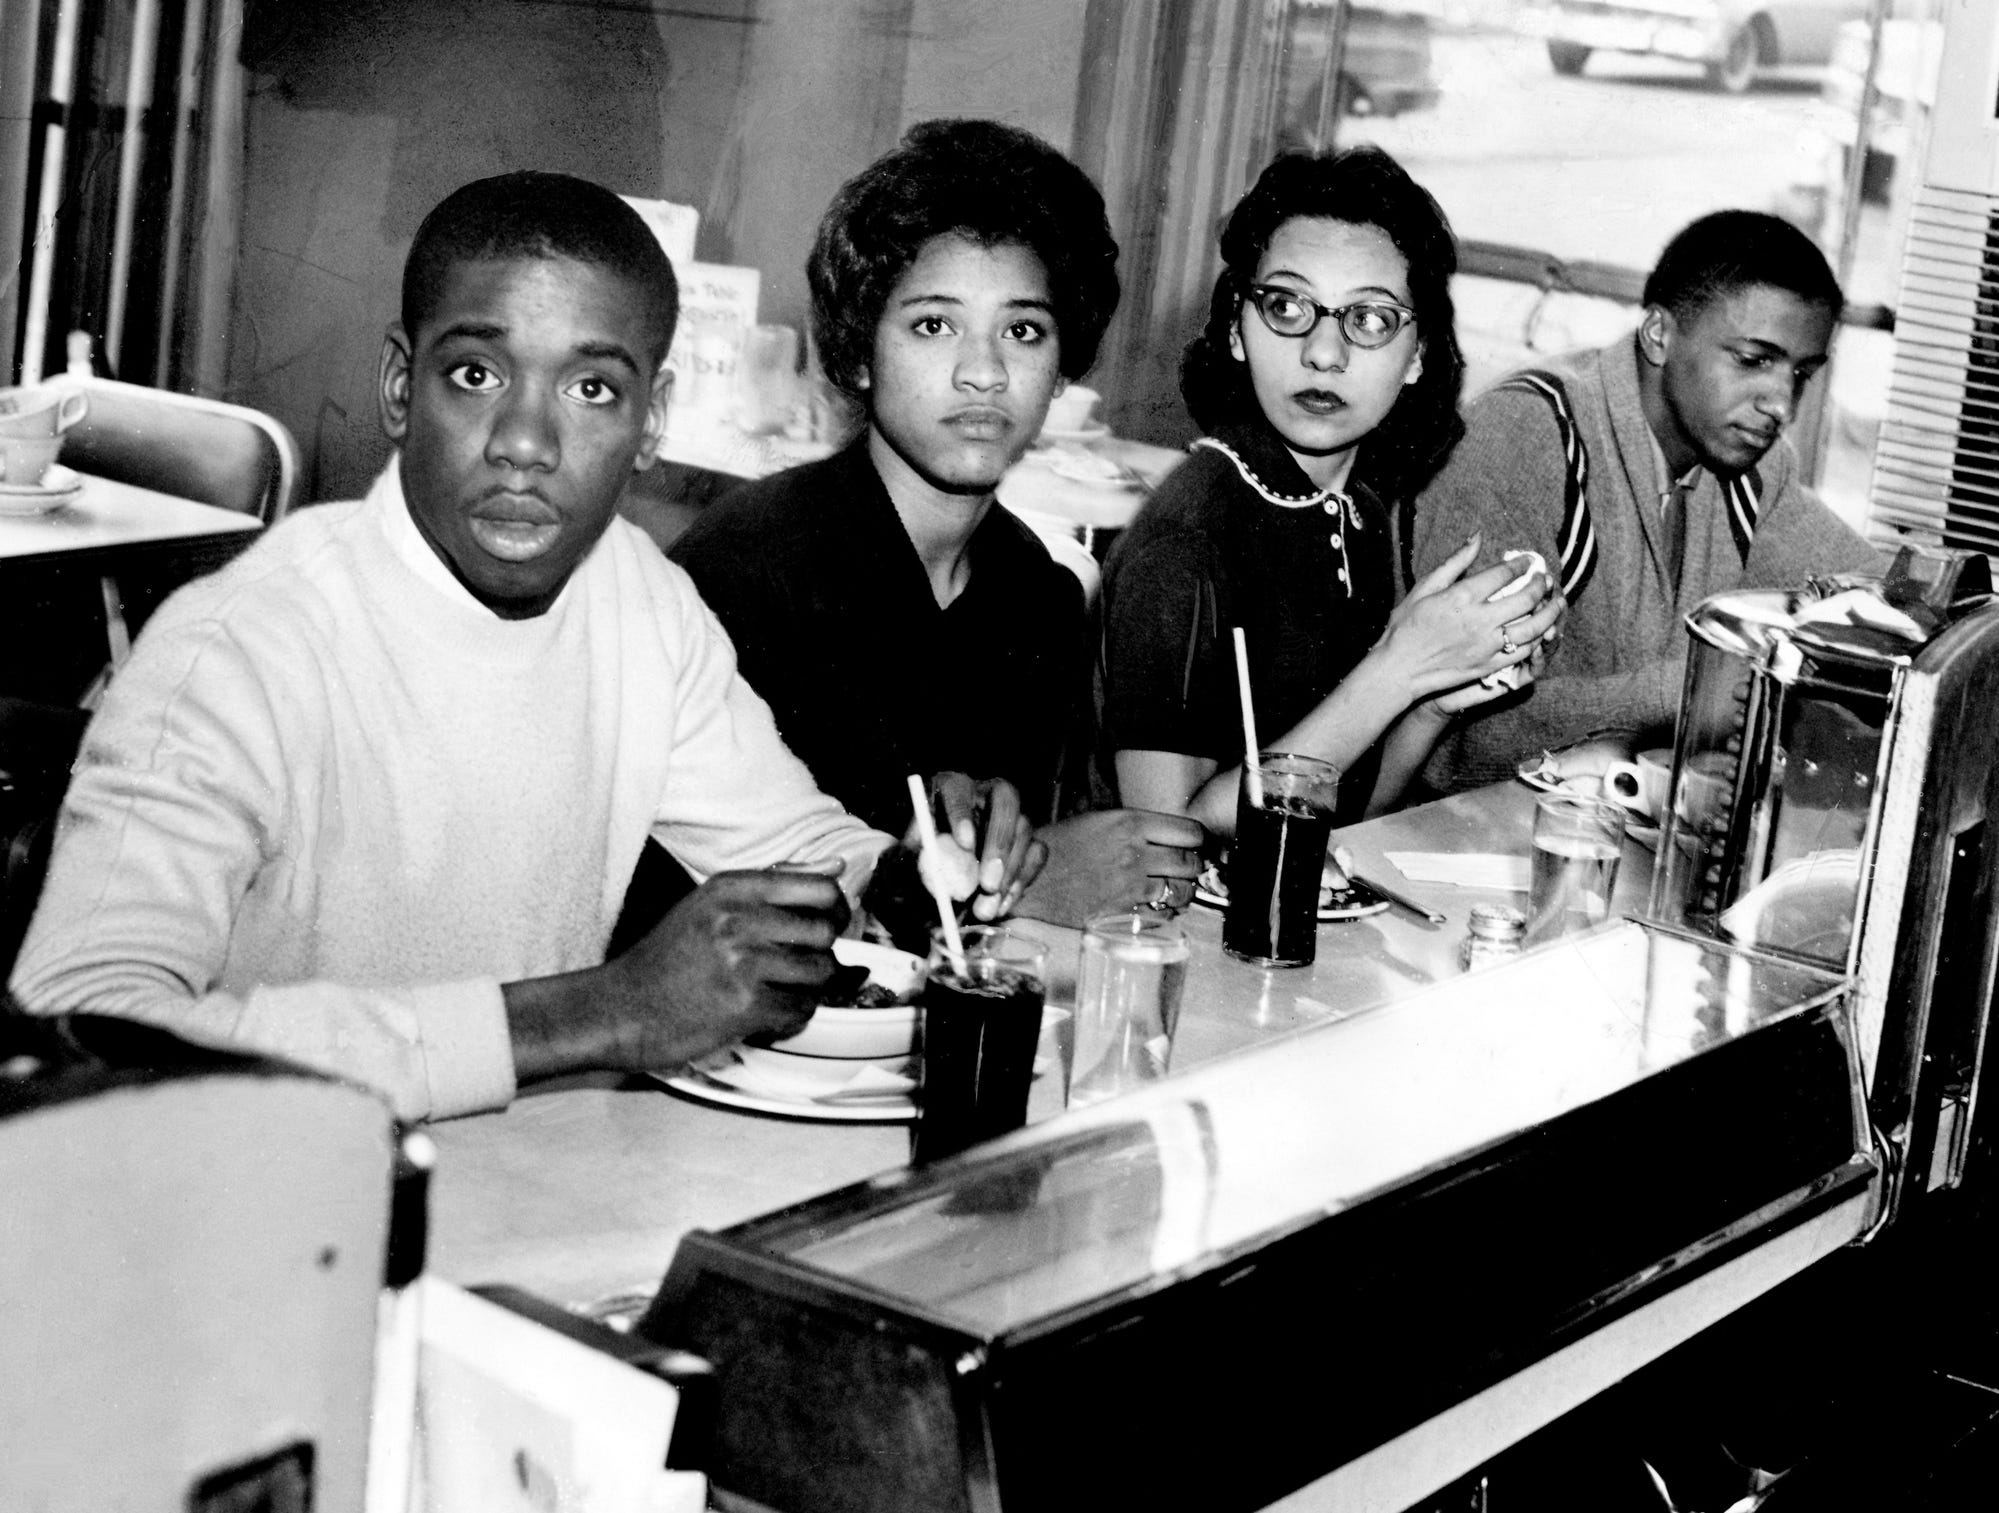 Matthew Walker, left, Peggy Alexander, Diane Nash and Stanley Hemphill eat lunch at the previously segregated counter of the Post House Restaurant in the Greyhound bus terminal March 16, 1960. This marked the first time since the start of the sit-in that blacks were served at previously all-white counters in Nashville.